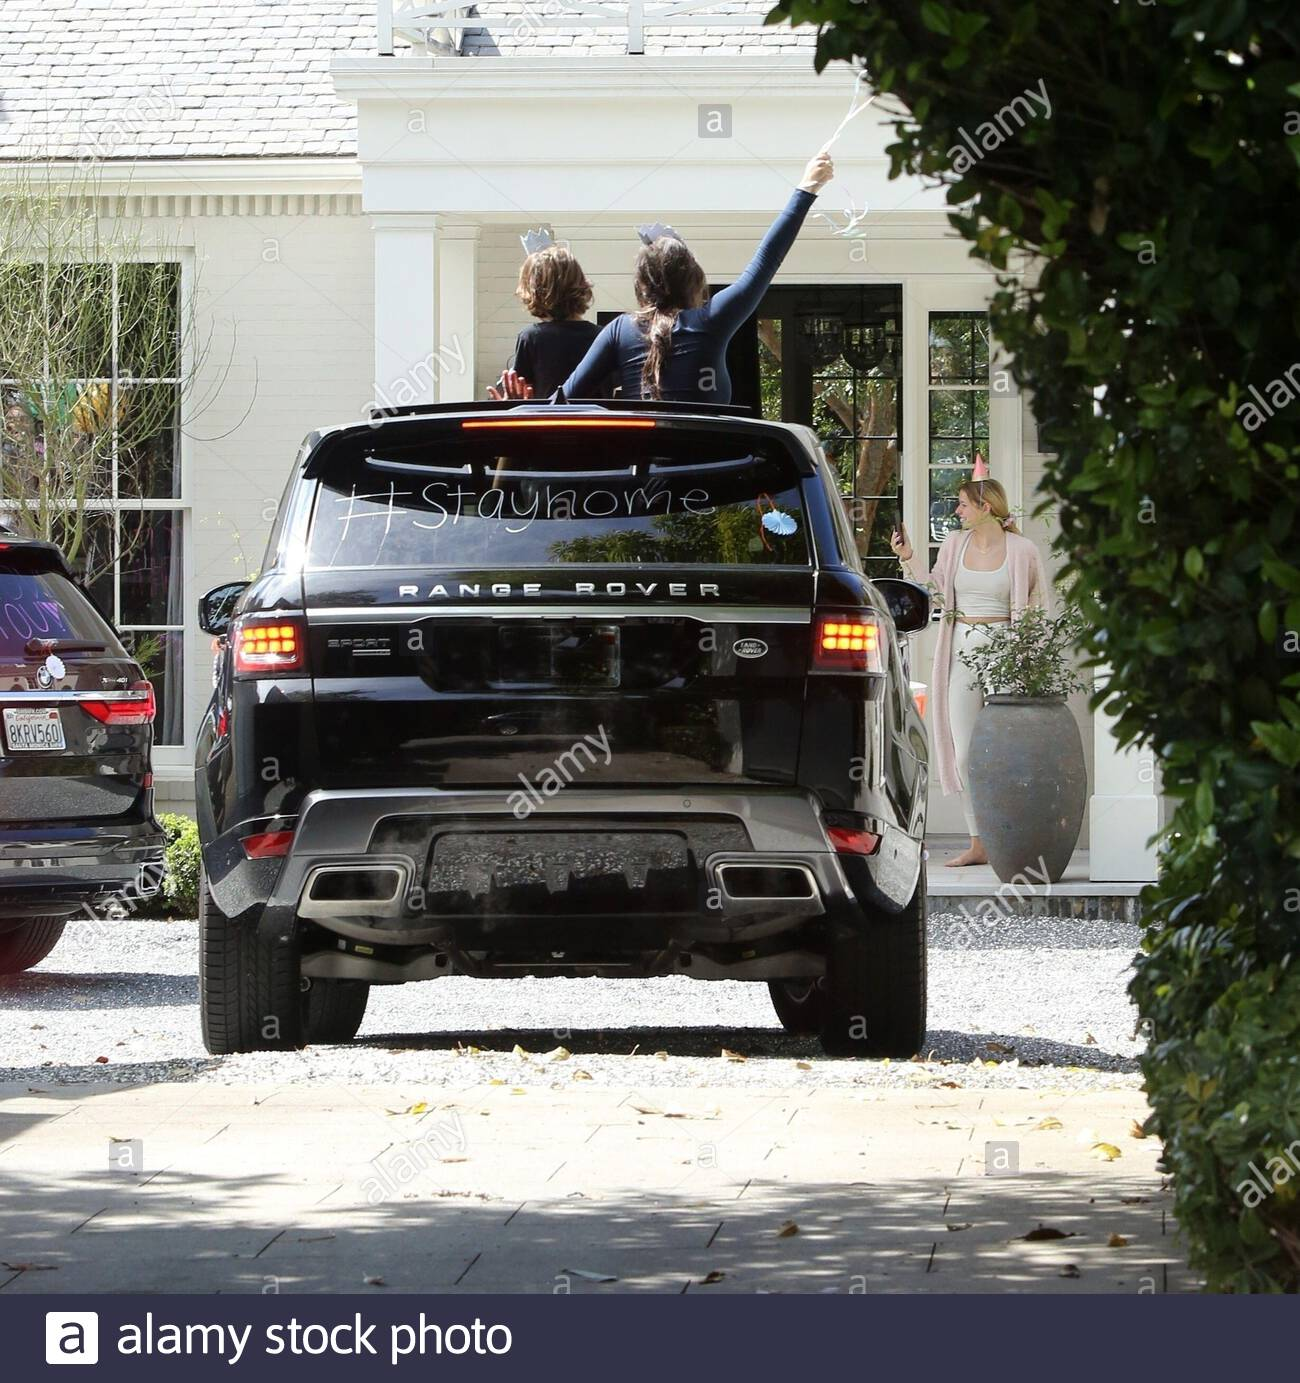 Exclusive Brentwood Ca Gwyneth Paltrow Has A Socially Distanced Drive By Birthday Party For Her Son Moses On His 14th Birthday Friends Drove Up In Cars Honking Their Horns And Playing